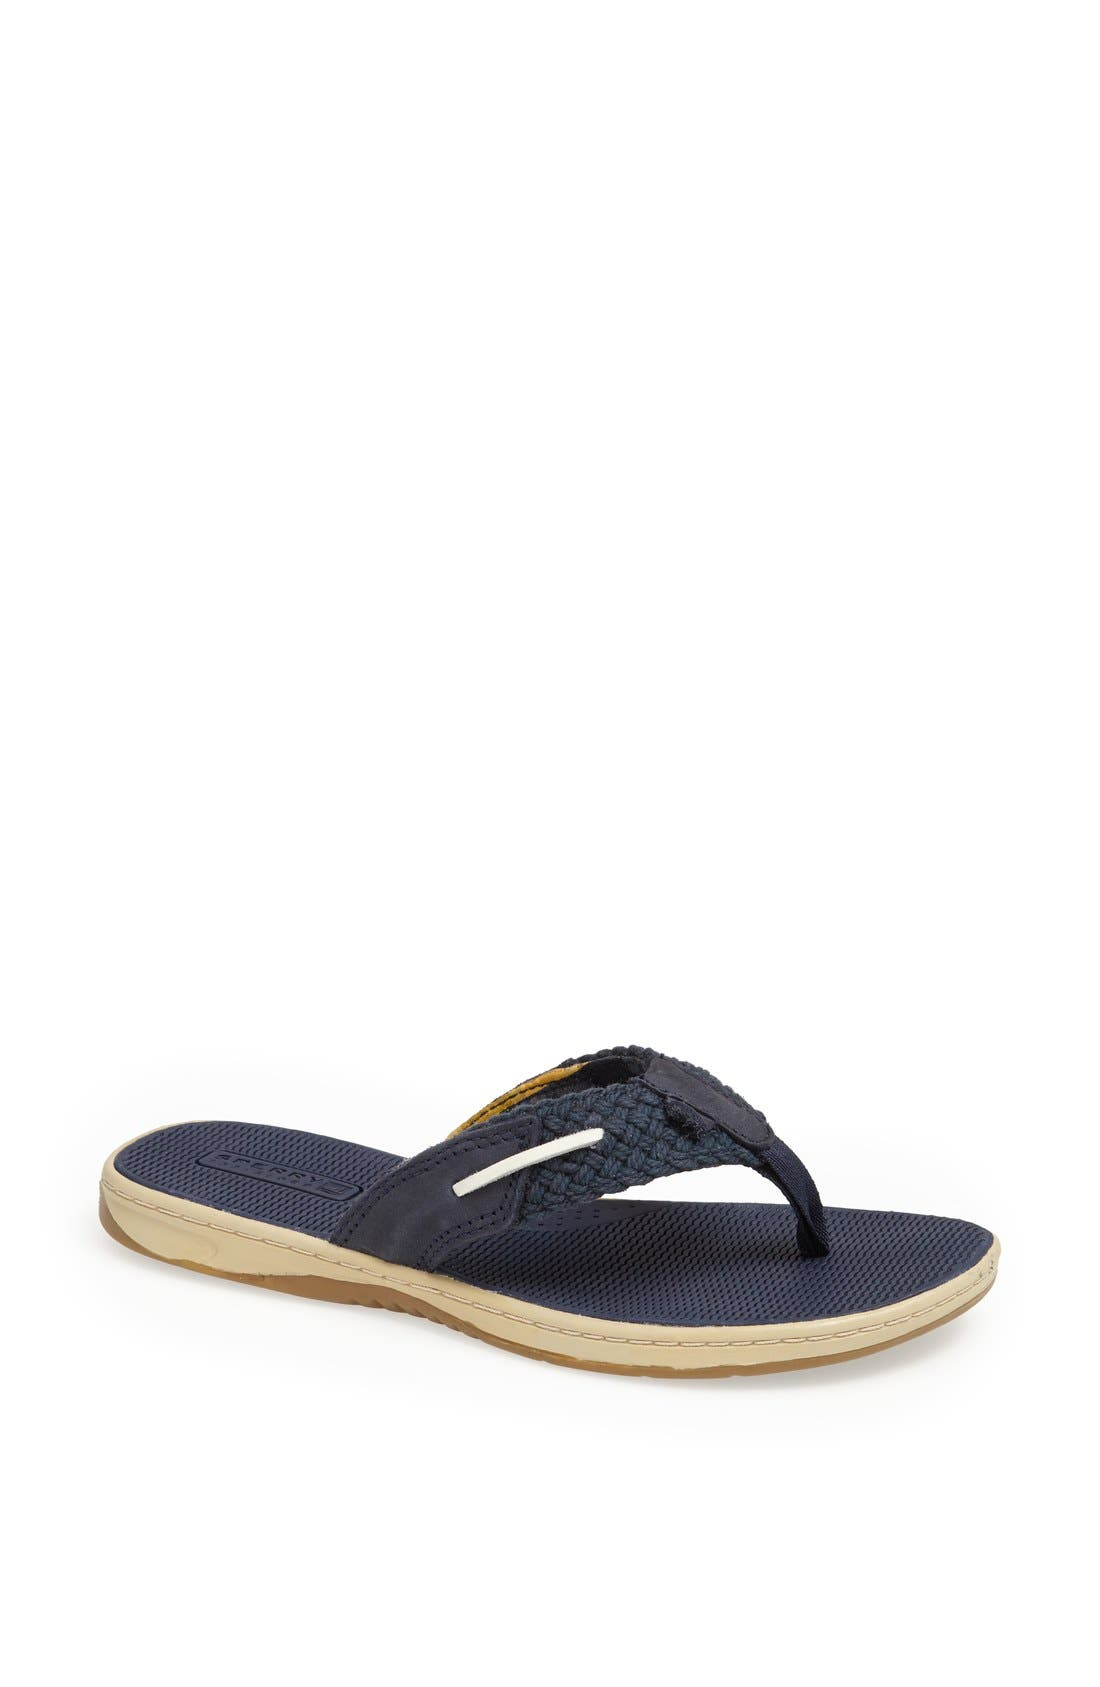 Main Image - Sperry Top-Sider® 'Parrotfish' Thong Sandal